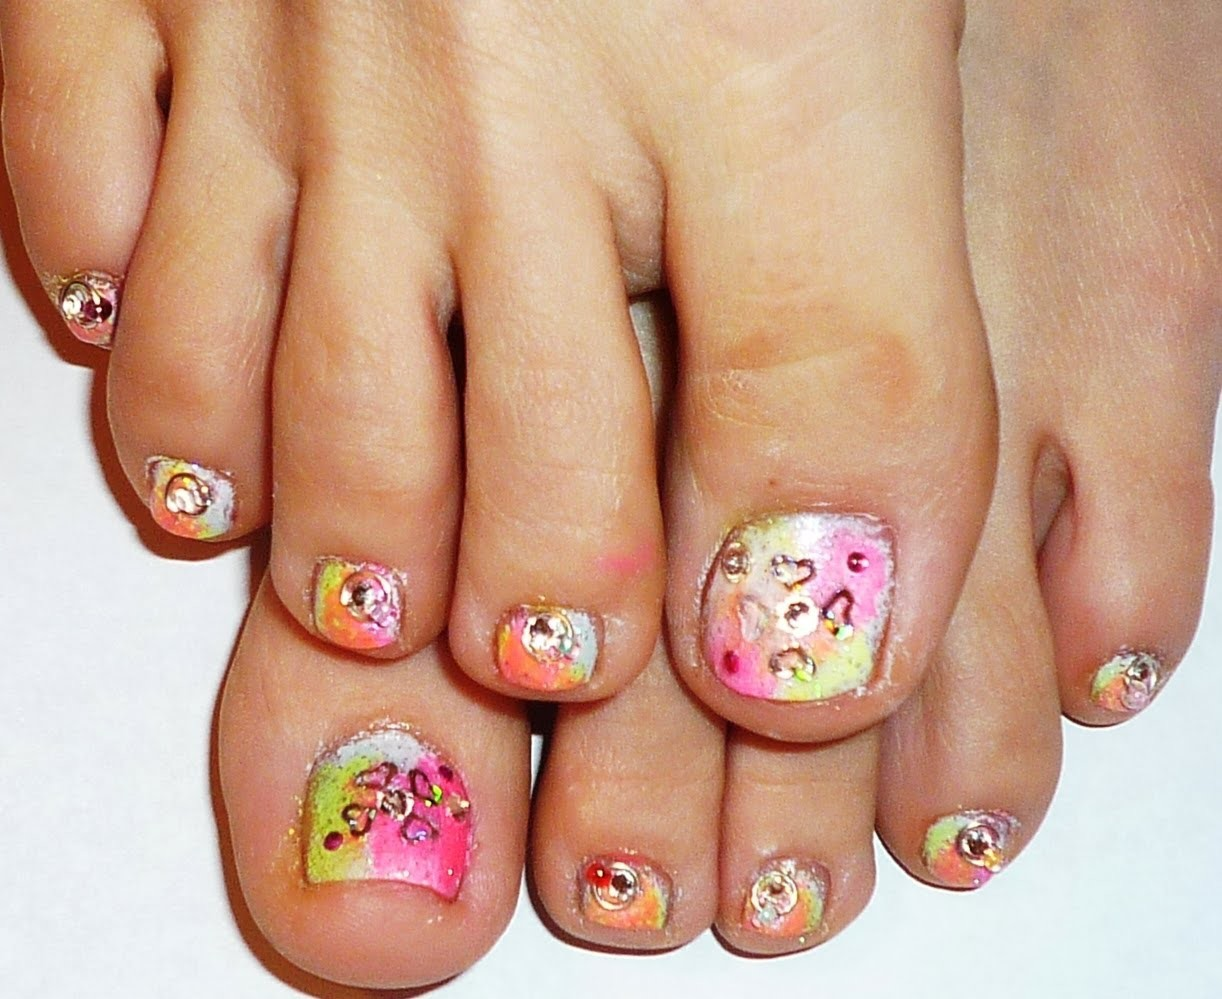 Date Night Nails - Part 2- Toe Nail Design collaboration with Love4nails